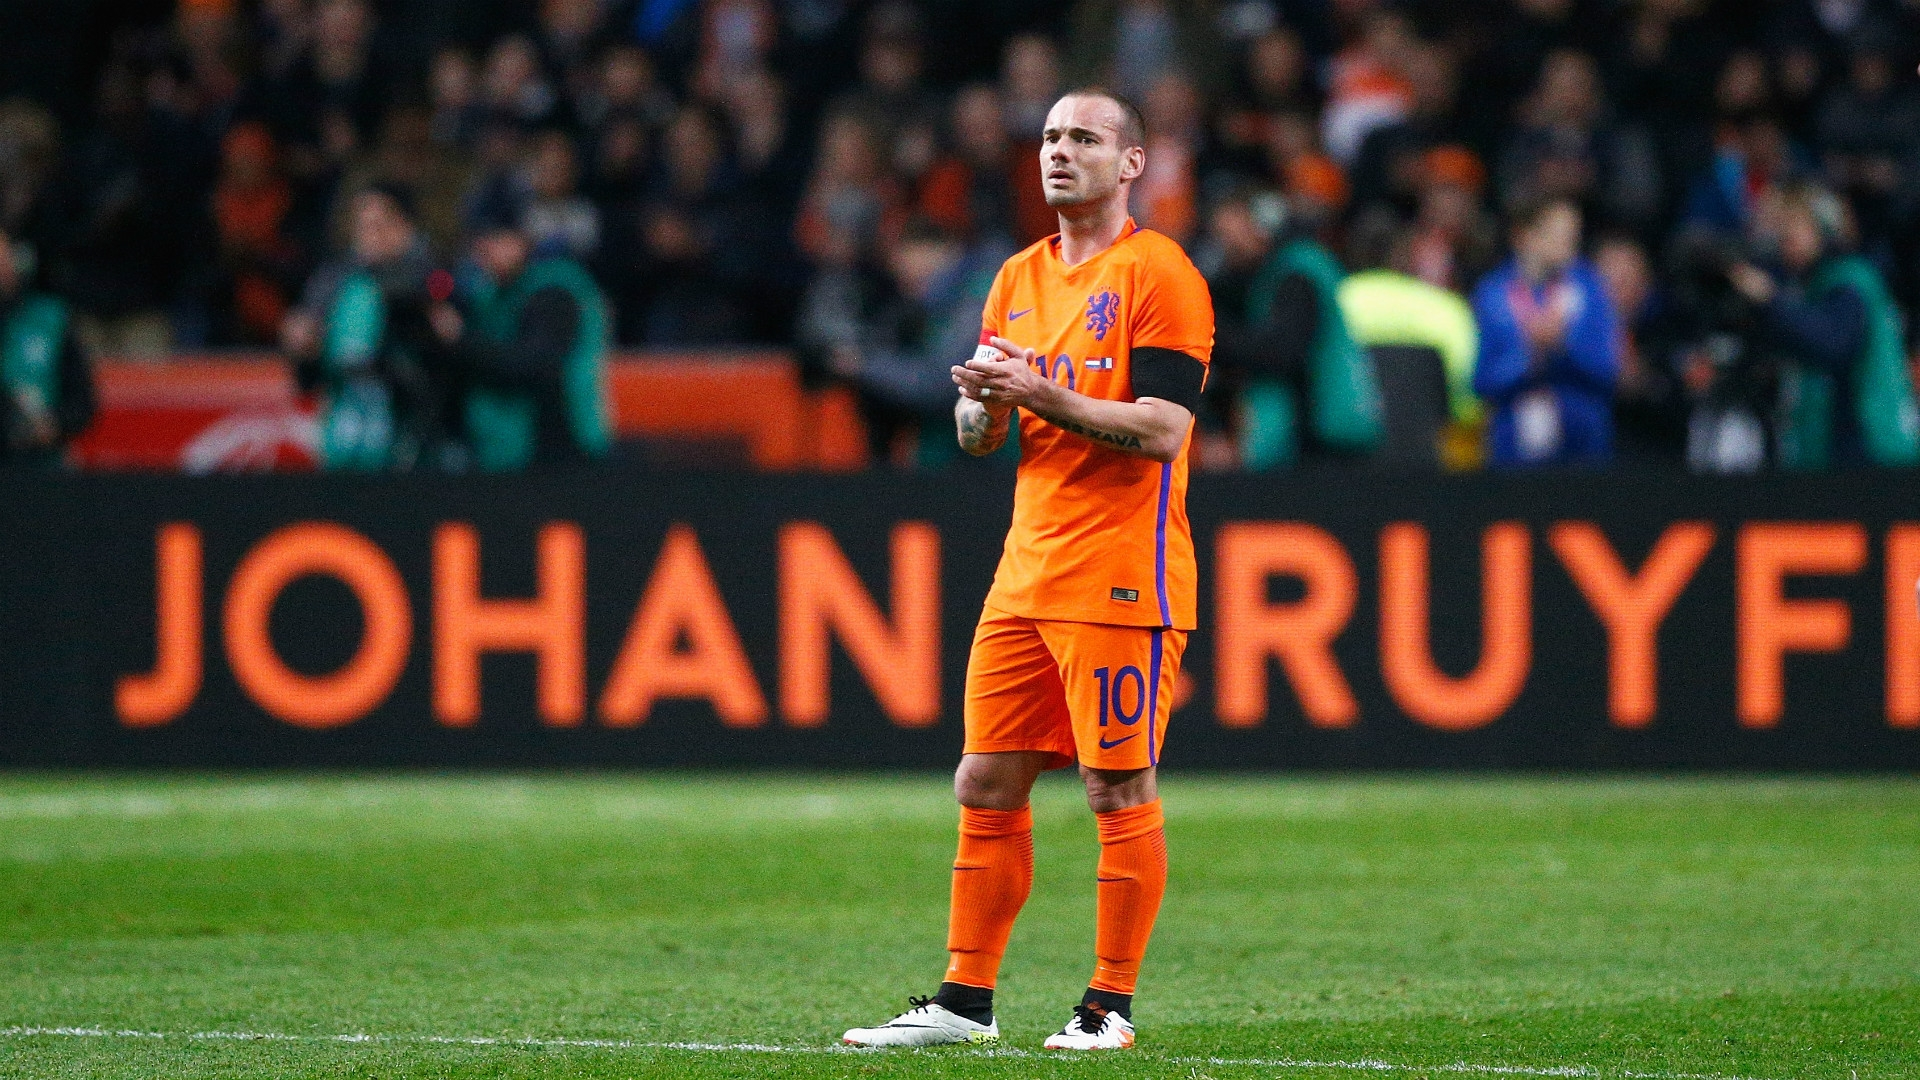 Sneijder says he is not interested in personal records at this time